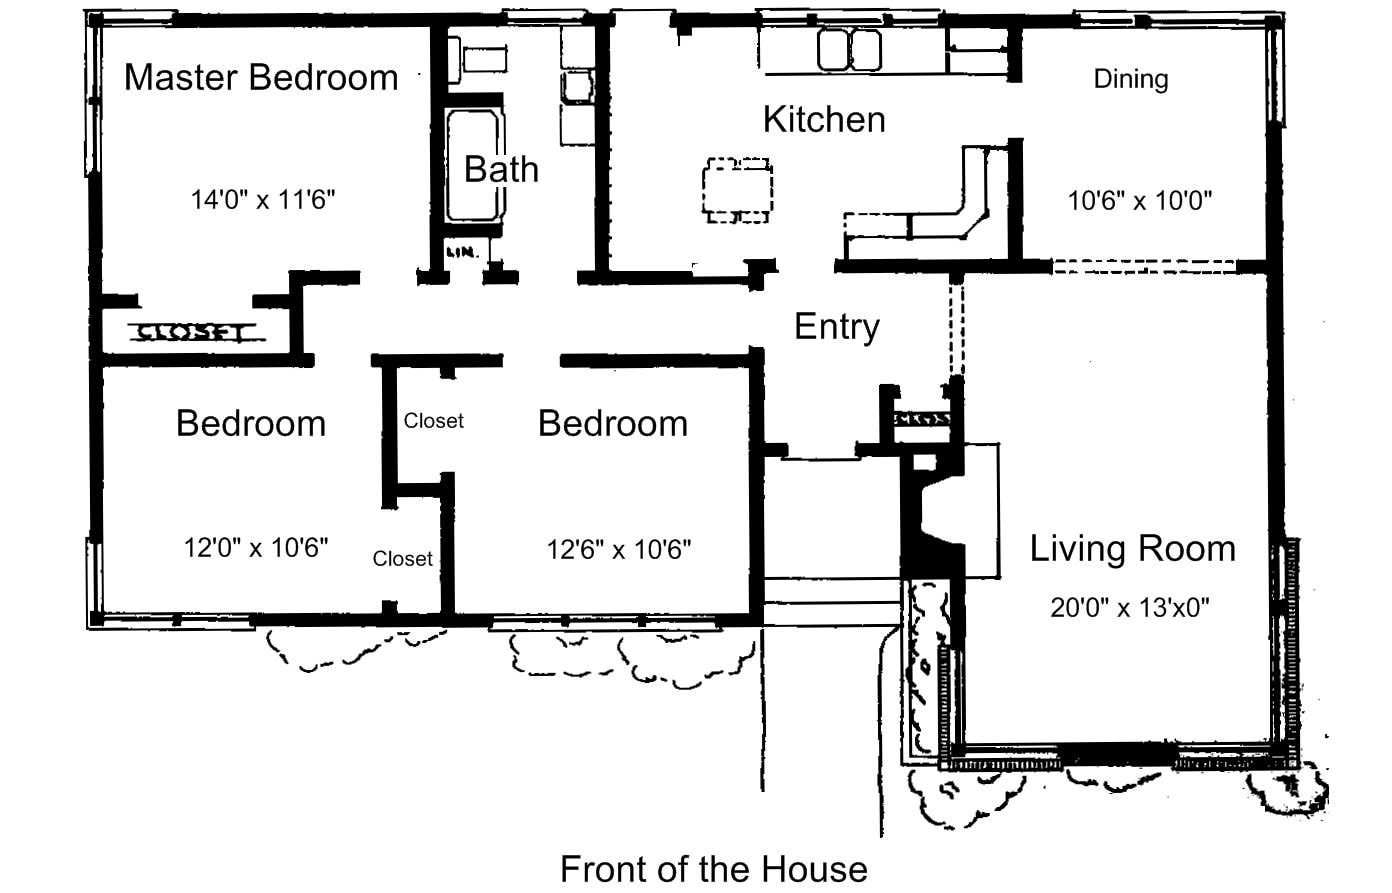 Free floor plans for small houses small house plans Small house floor plans free